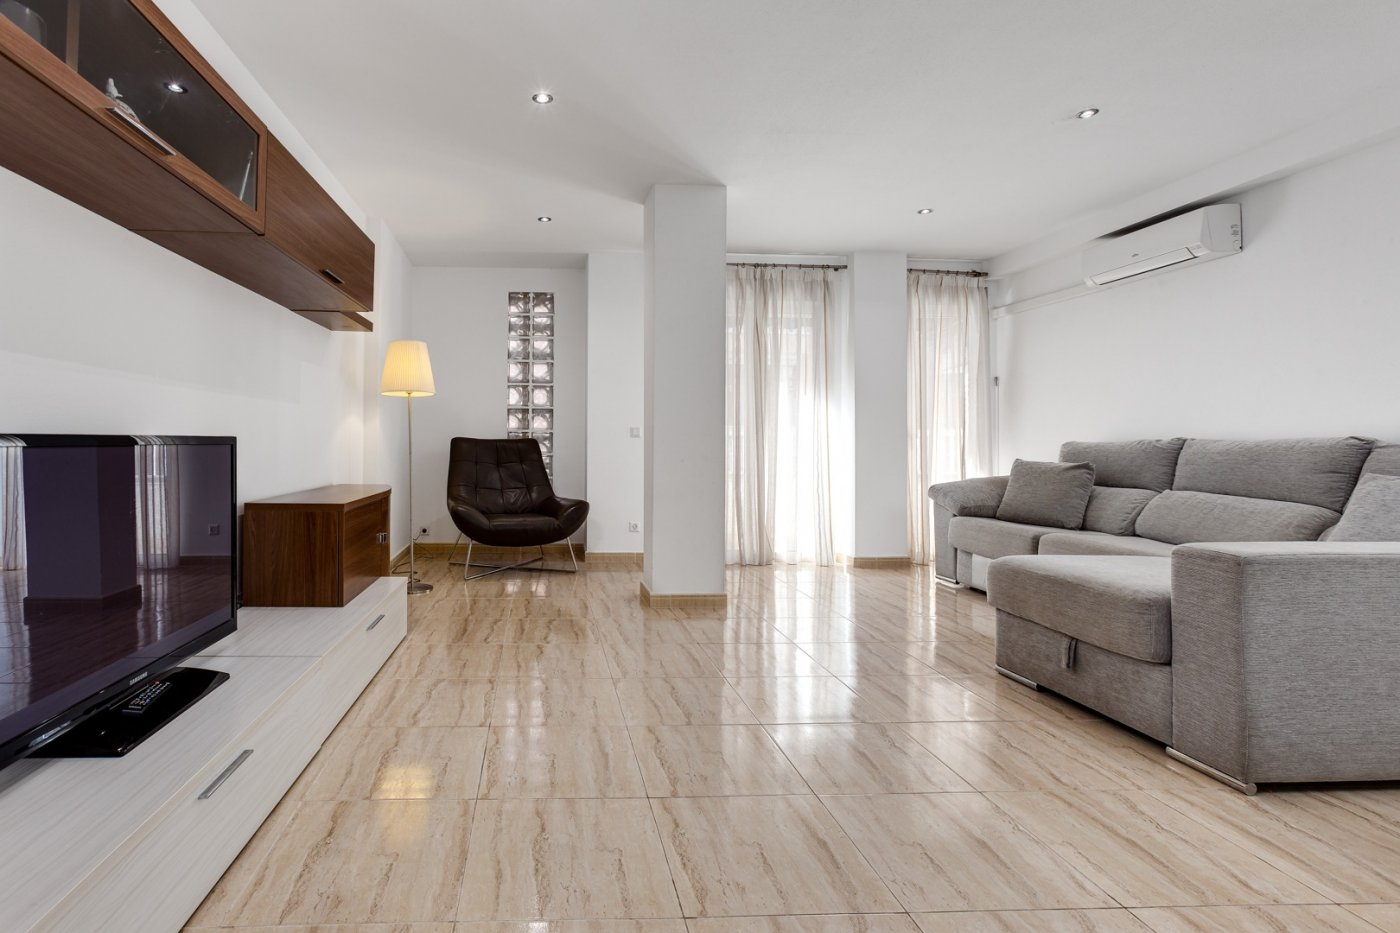 Spacious renovated 3 bedroom apartment for sale just 250m from the Playa del Cura beach